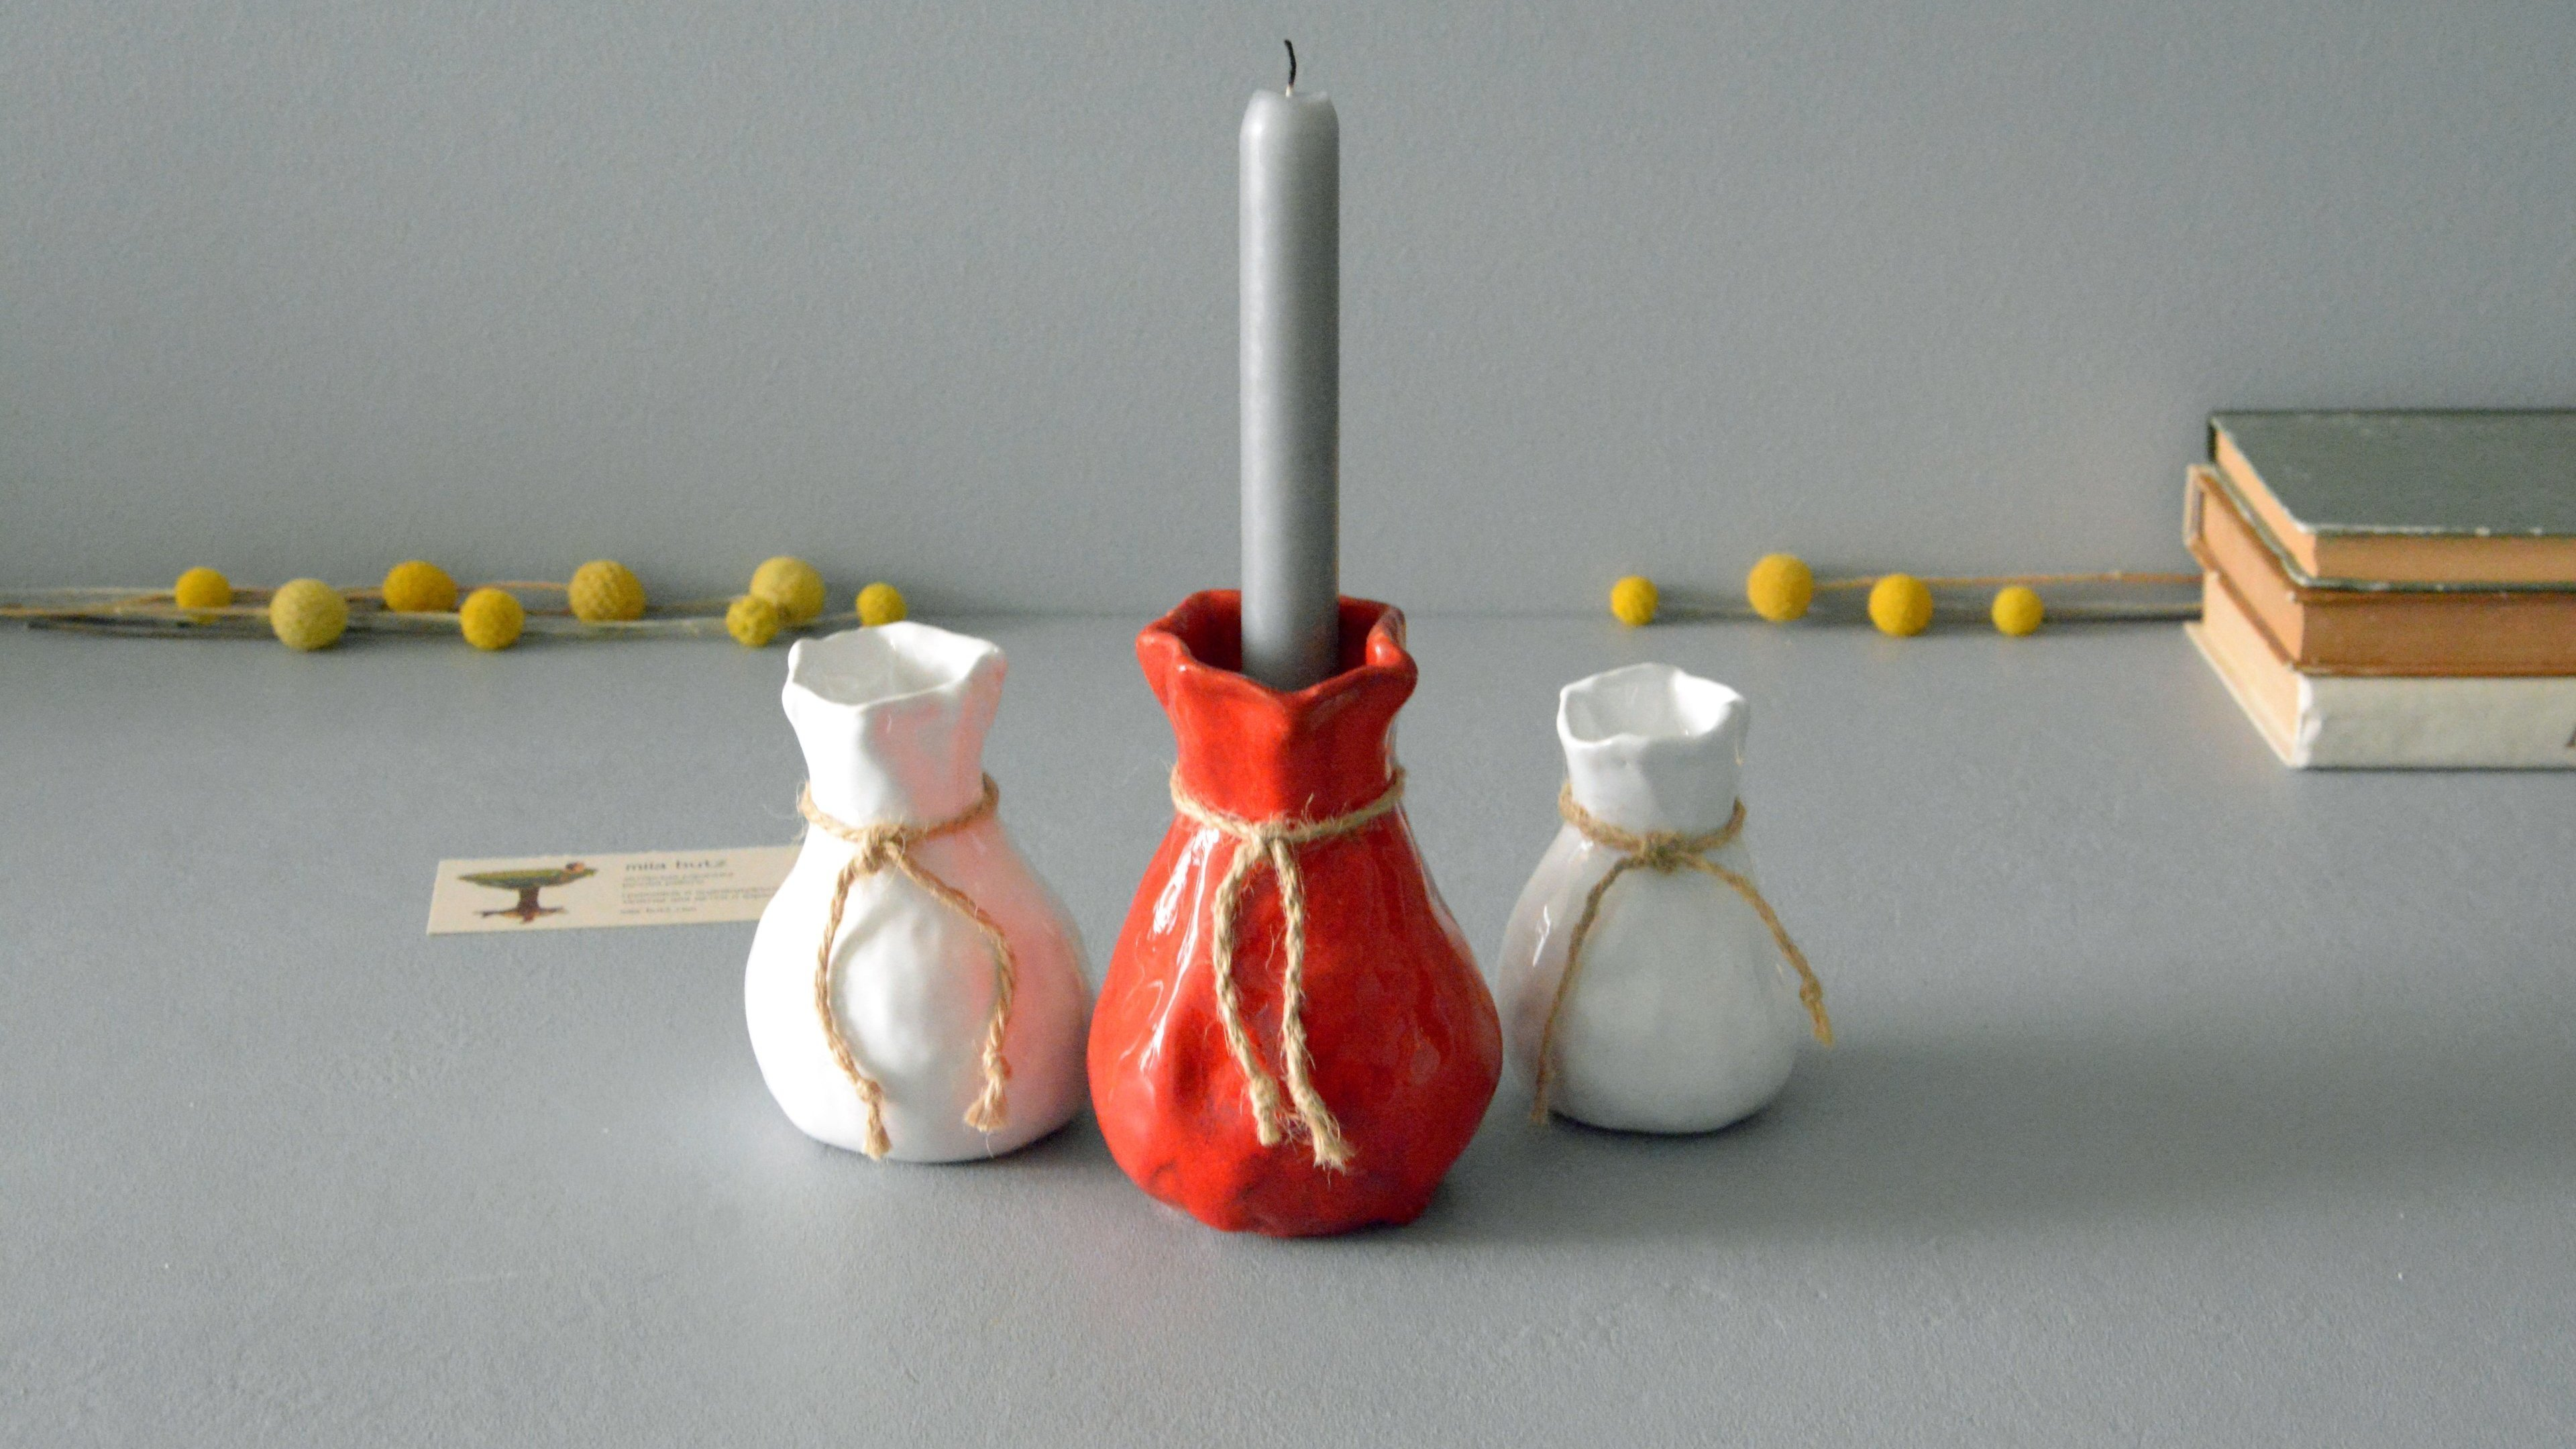 Candle vase «Red Bagful», height - 12 cm, color - red. Photo 1411-3840-2160.